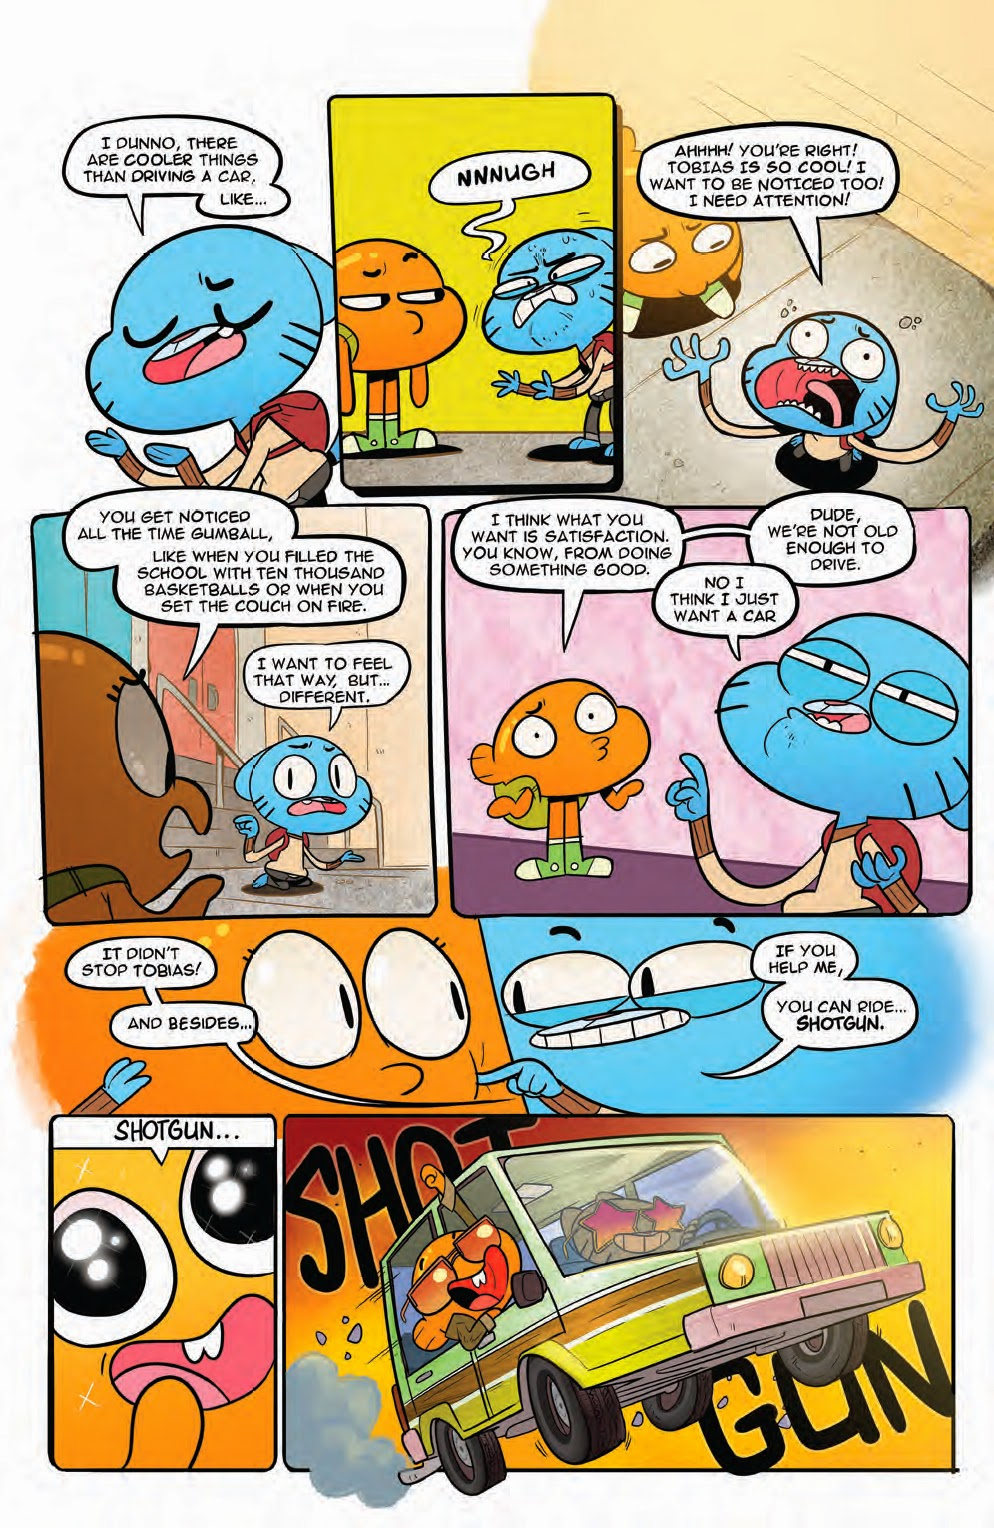 Amazing World Of Gumball Anime Porn Comic page 45 comic & graphic novel reviews july 2015 week three